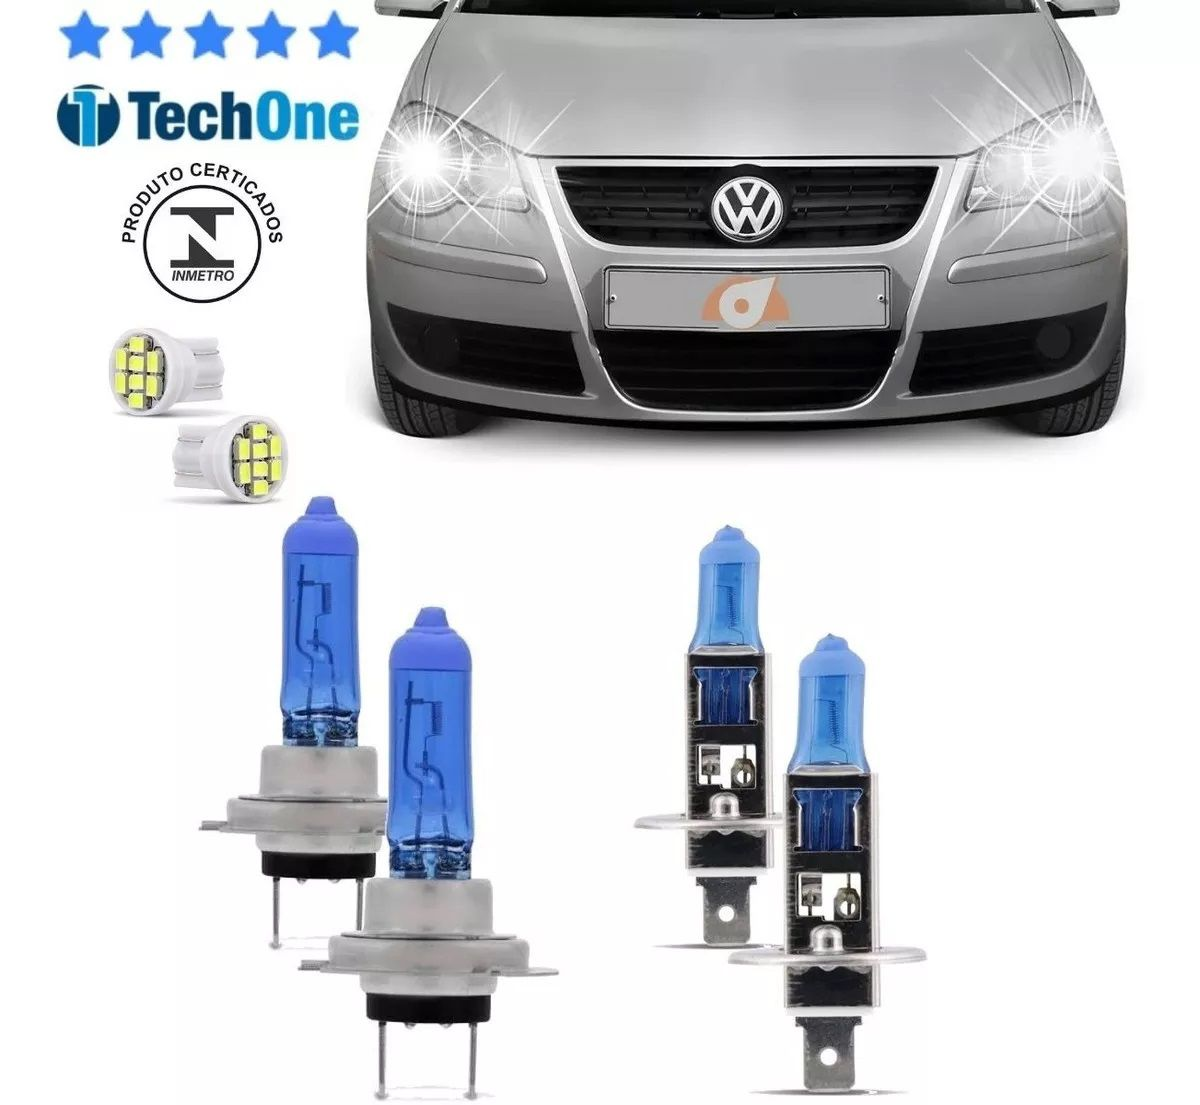 Kit Lampadas Polo Hatch Sedan 2002 2003 2004 2005 2006 Super Brancas Farol H7 H1 - Techone 8500k 12v 55w Inmetro